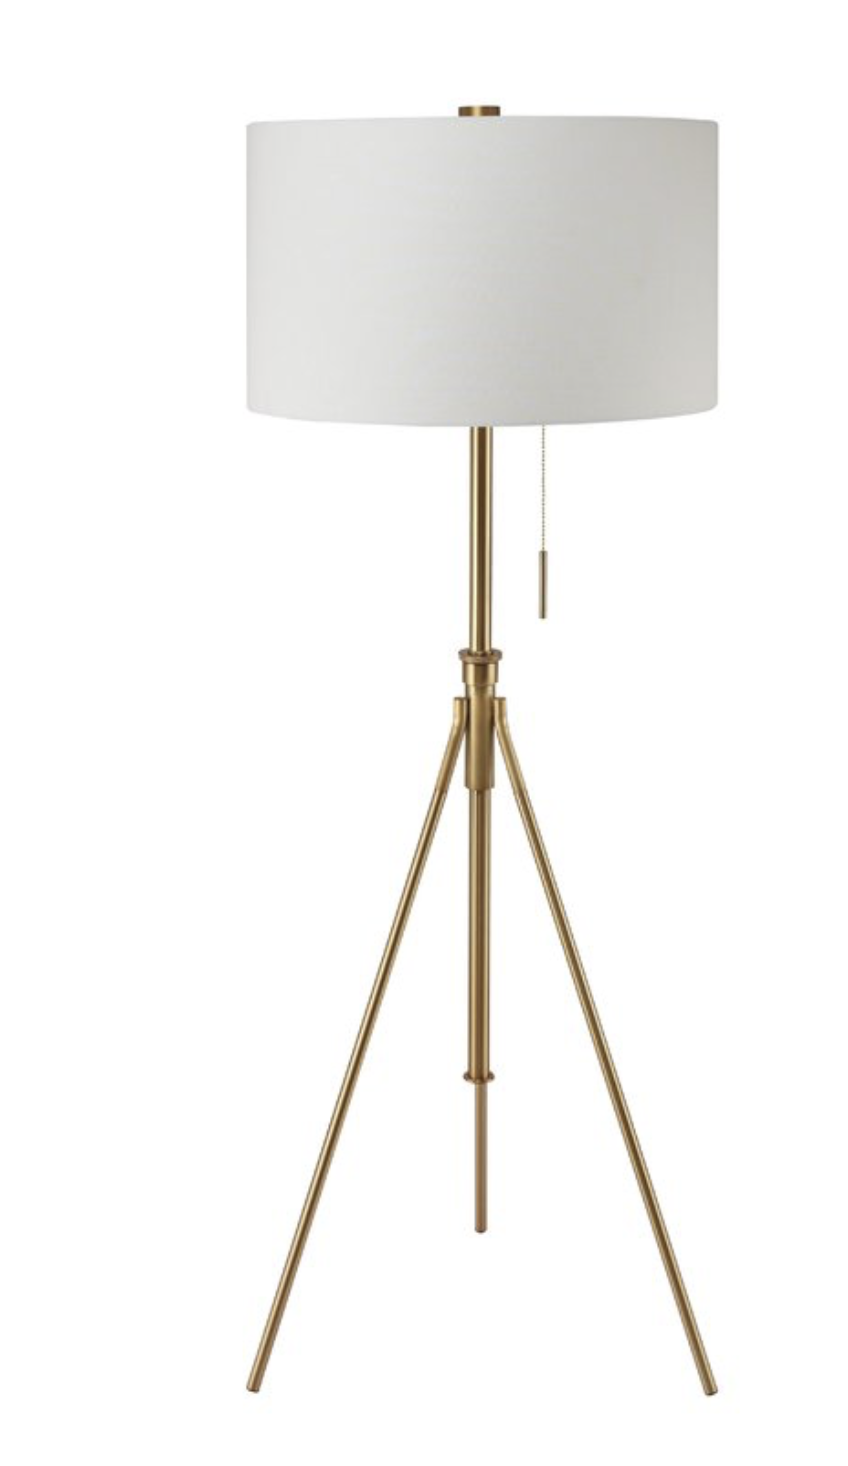 pottery barn style tripod lamp for less